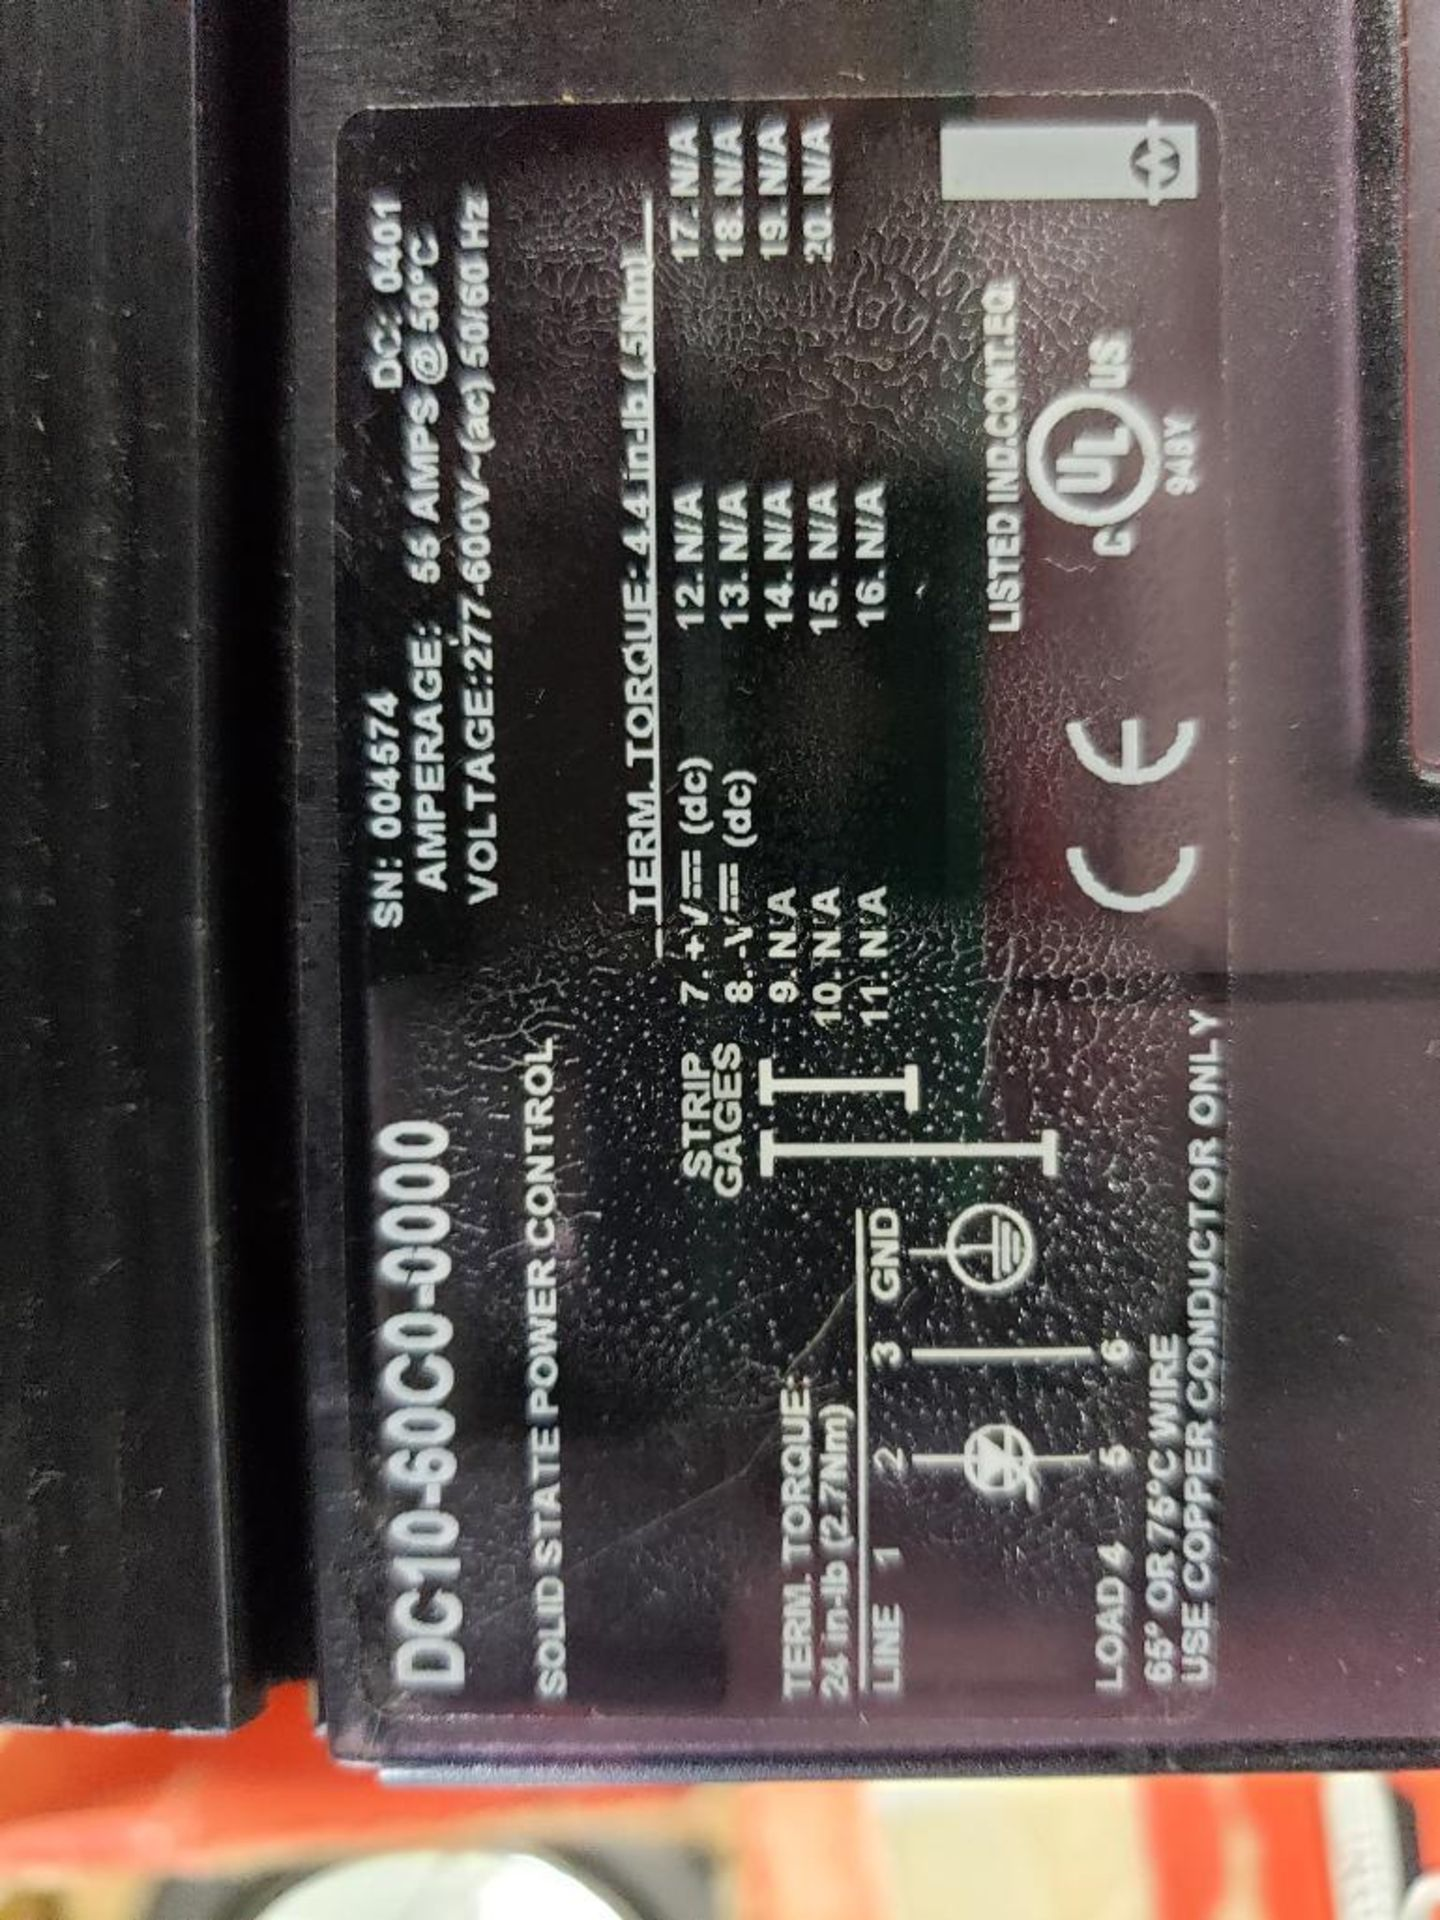 Qty 2 - Watlow DIN-A-Mite DC10-60C0-0000 power controller. - Image 4 of 5